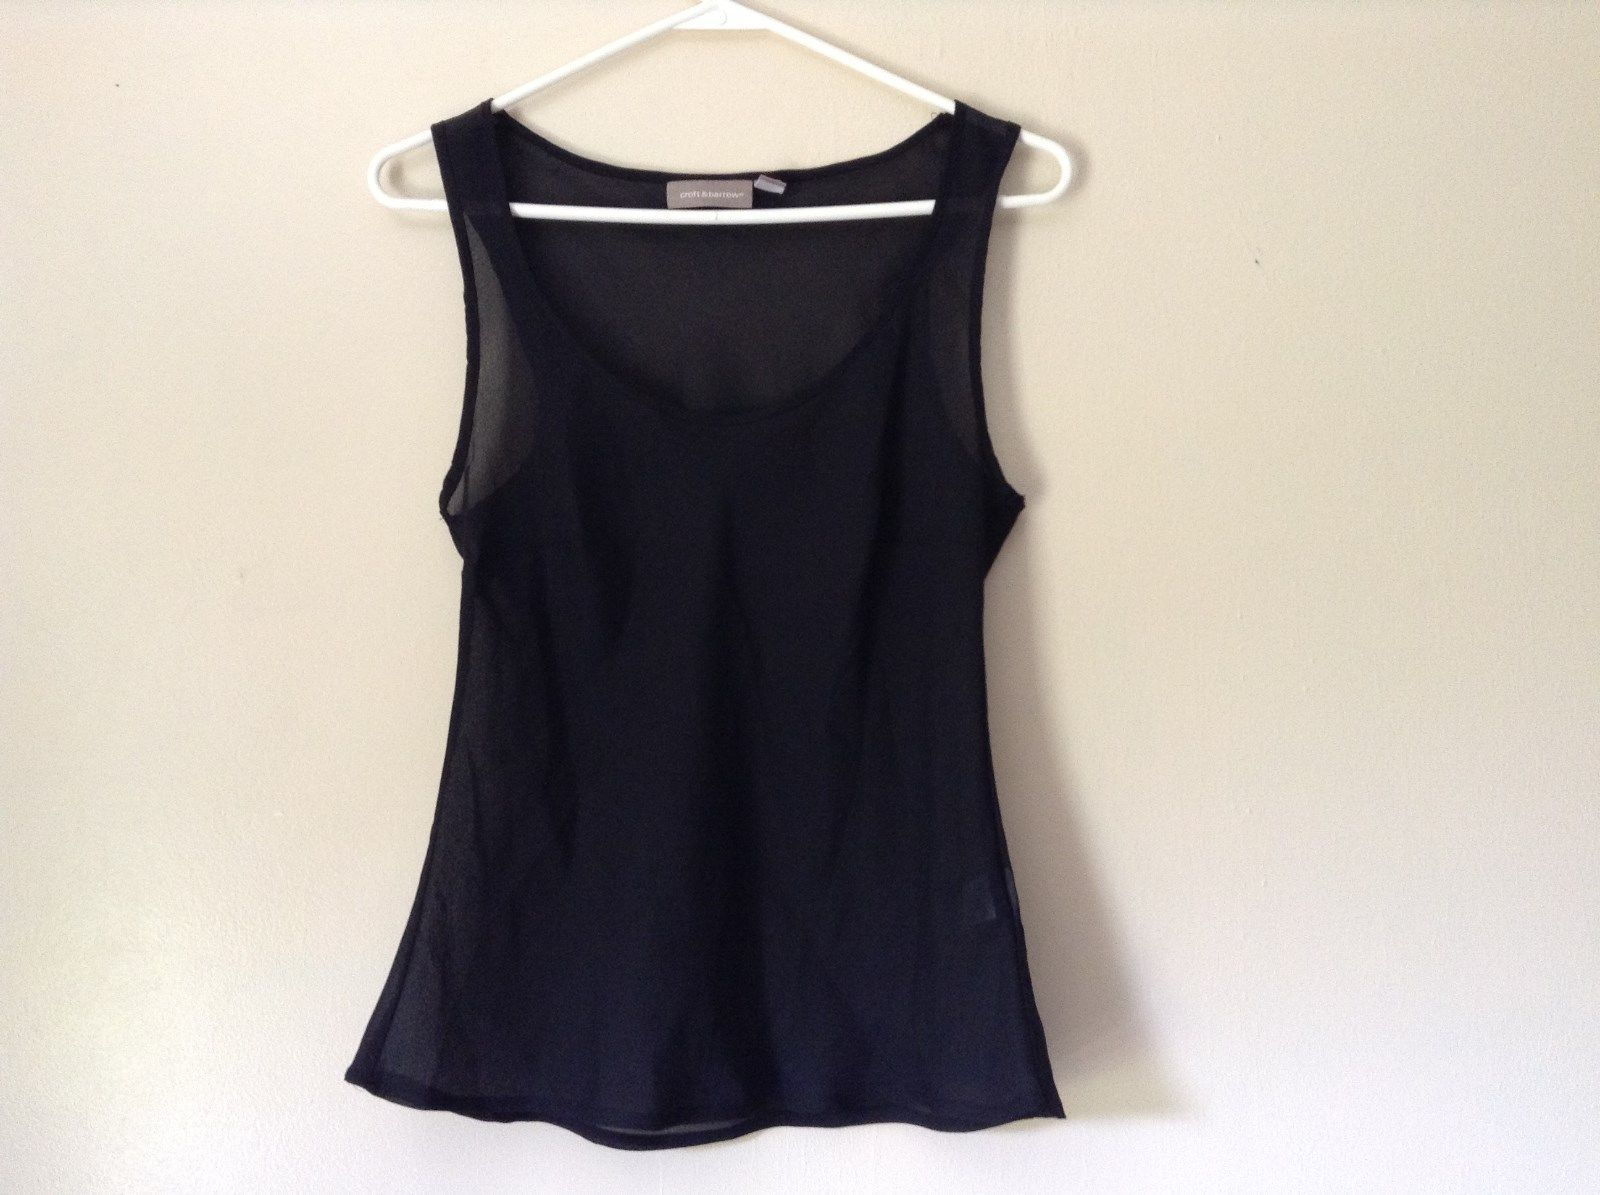 Black See Through Tank Top Size Small 100 Percent Polyester Croft and Barrow